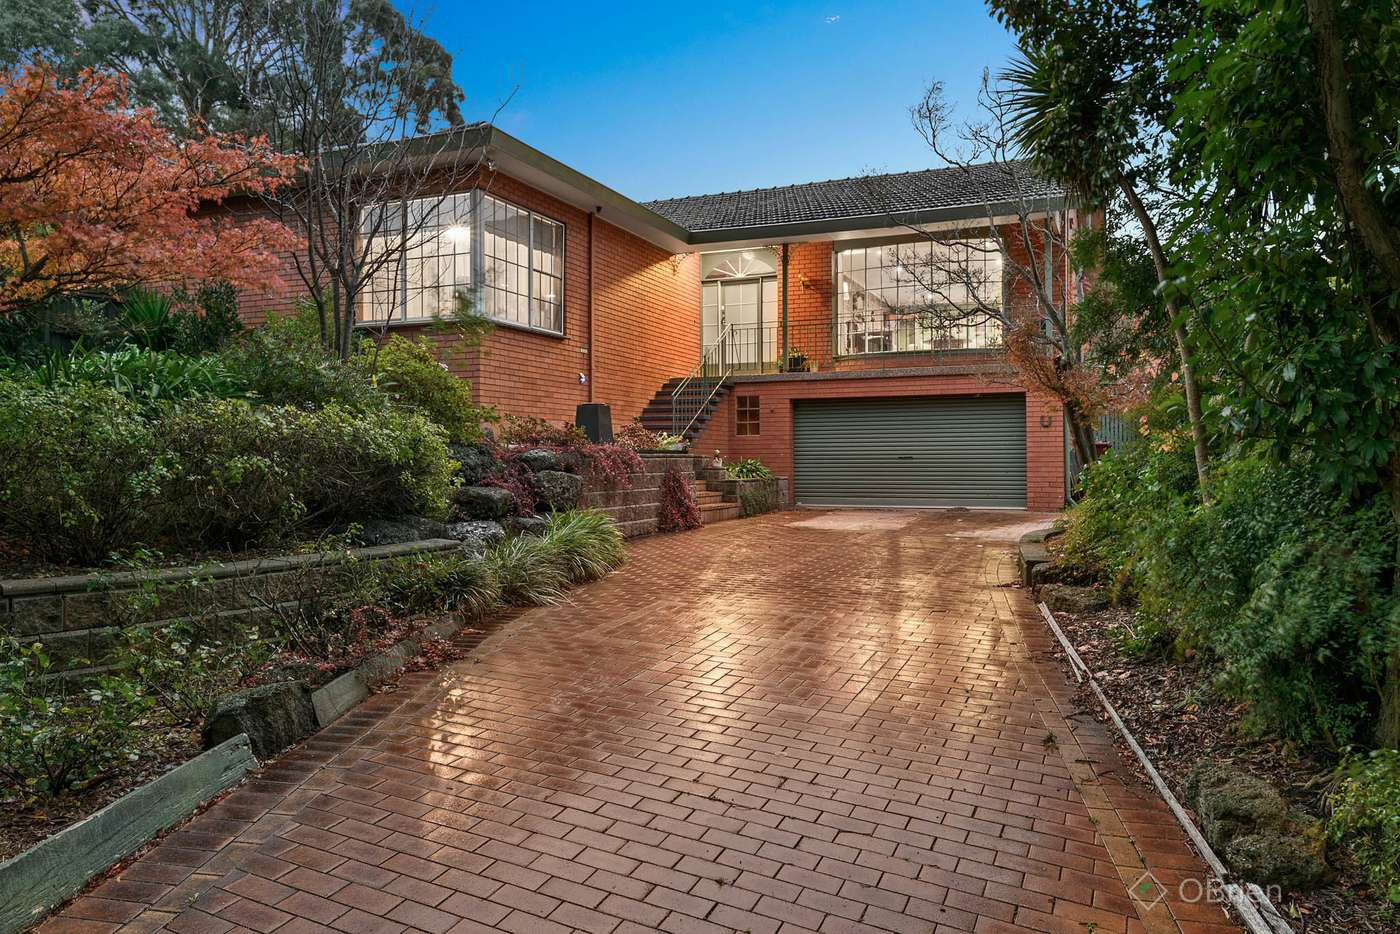 Main view of Homely house listing, 18 Shute Avenue, Berwick VIC 3806